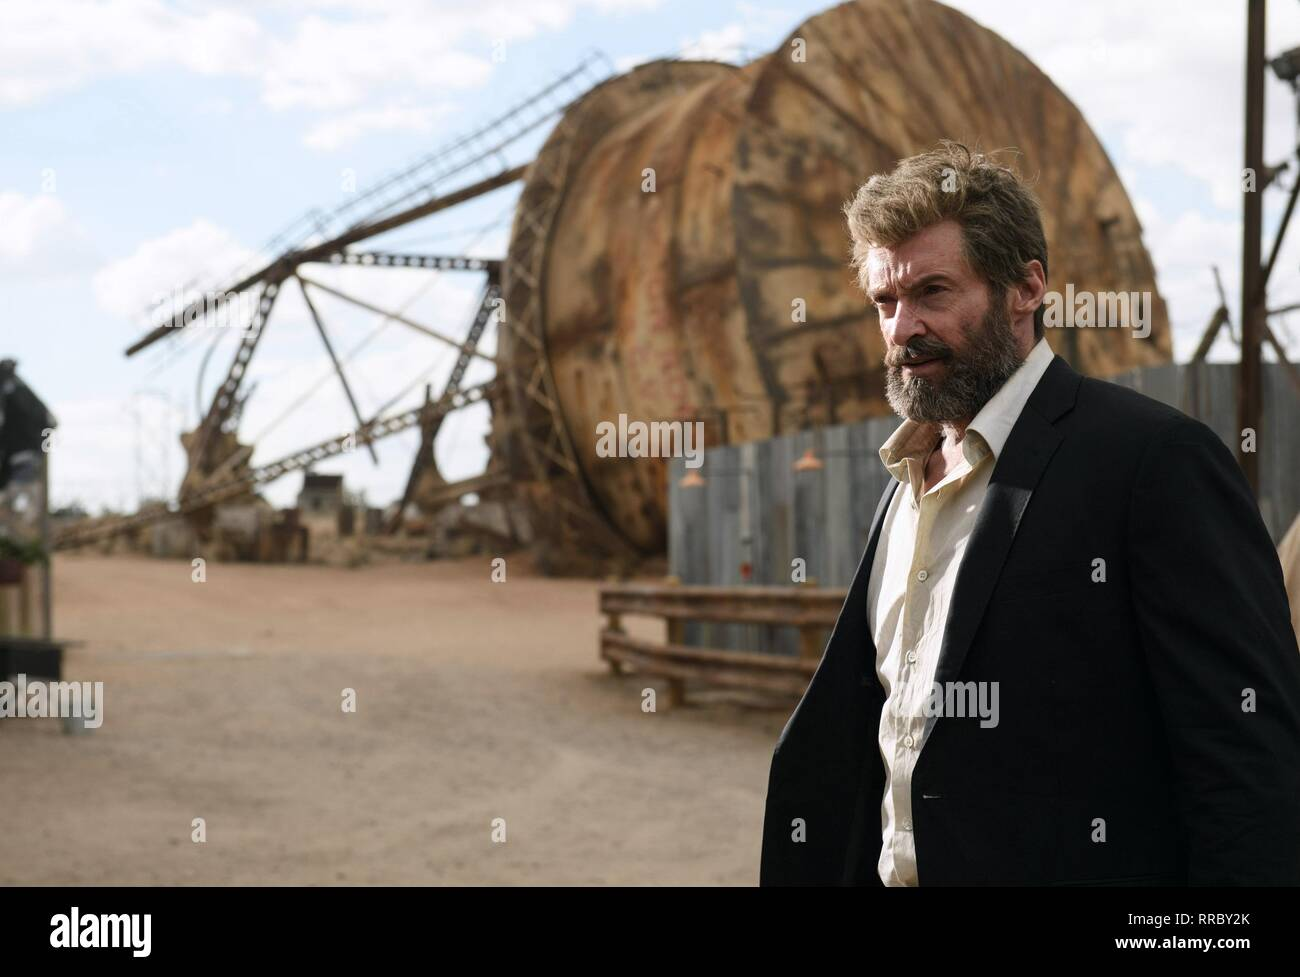 LOGAN, HUGH JACKMAN, 2017 Stock Photo